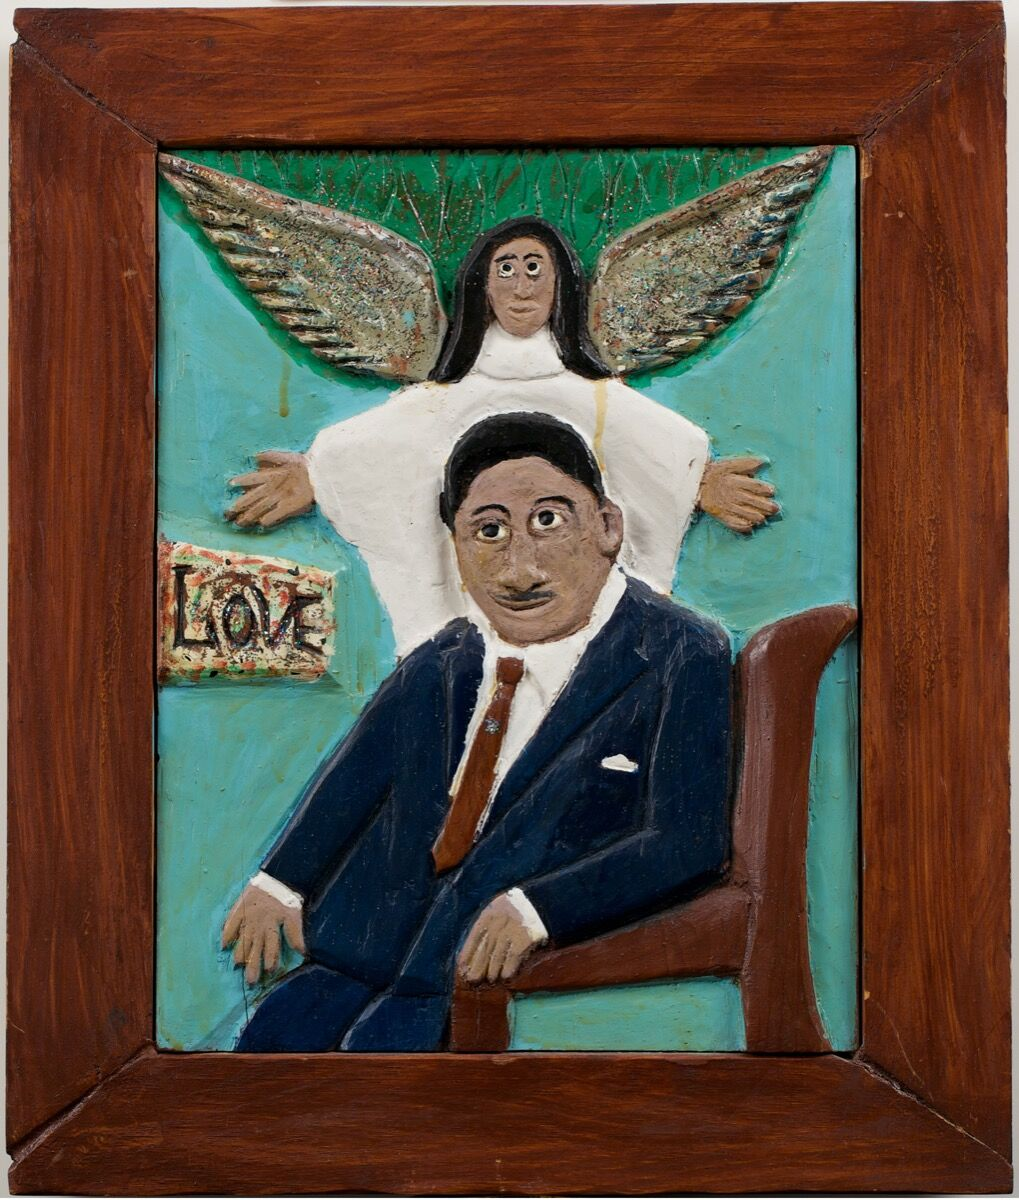 Elijah Pierce, Love (Martin Luther King, Jr.), Unknown. Paint, glitter, varnish on wood. The Collection of Jill and Sheldon Bonovitz. Promised gift to the Philadelphia Museum of Art. Courtesy of the Barnes Foundation.